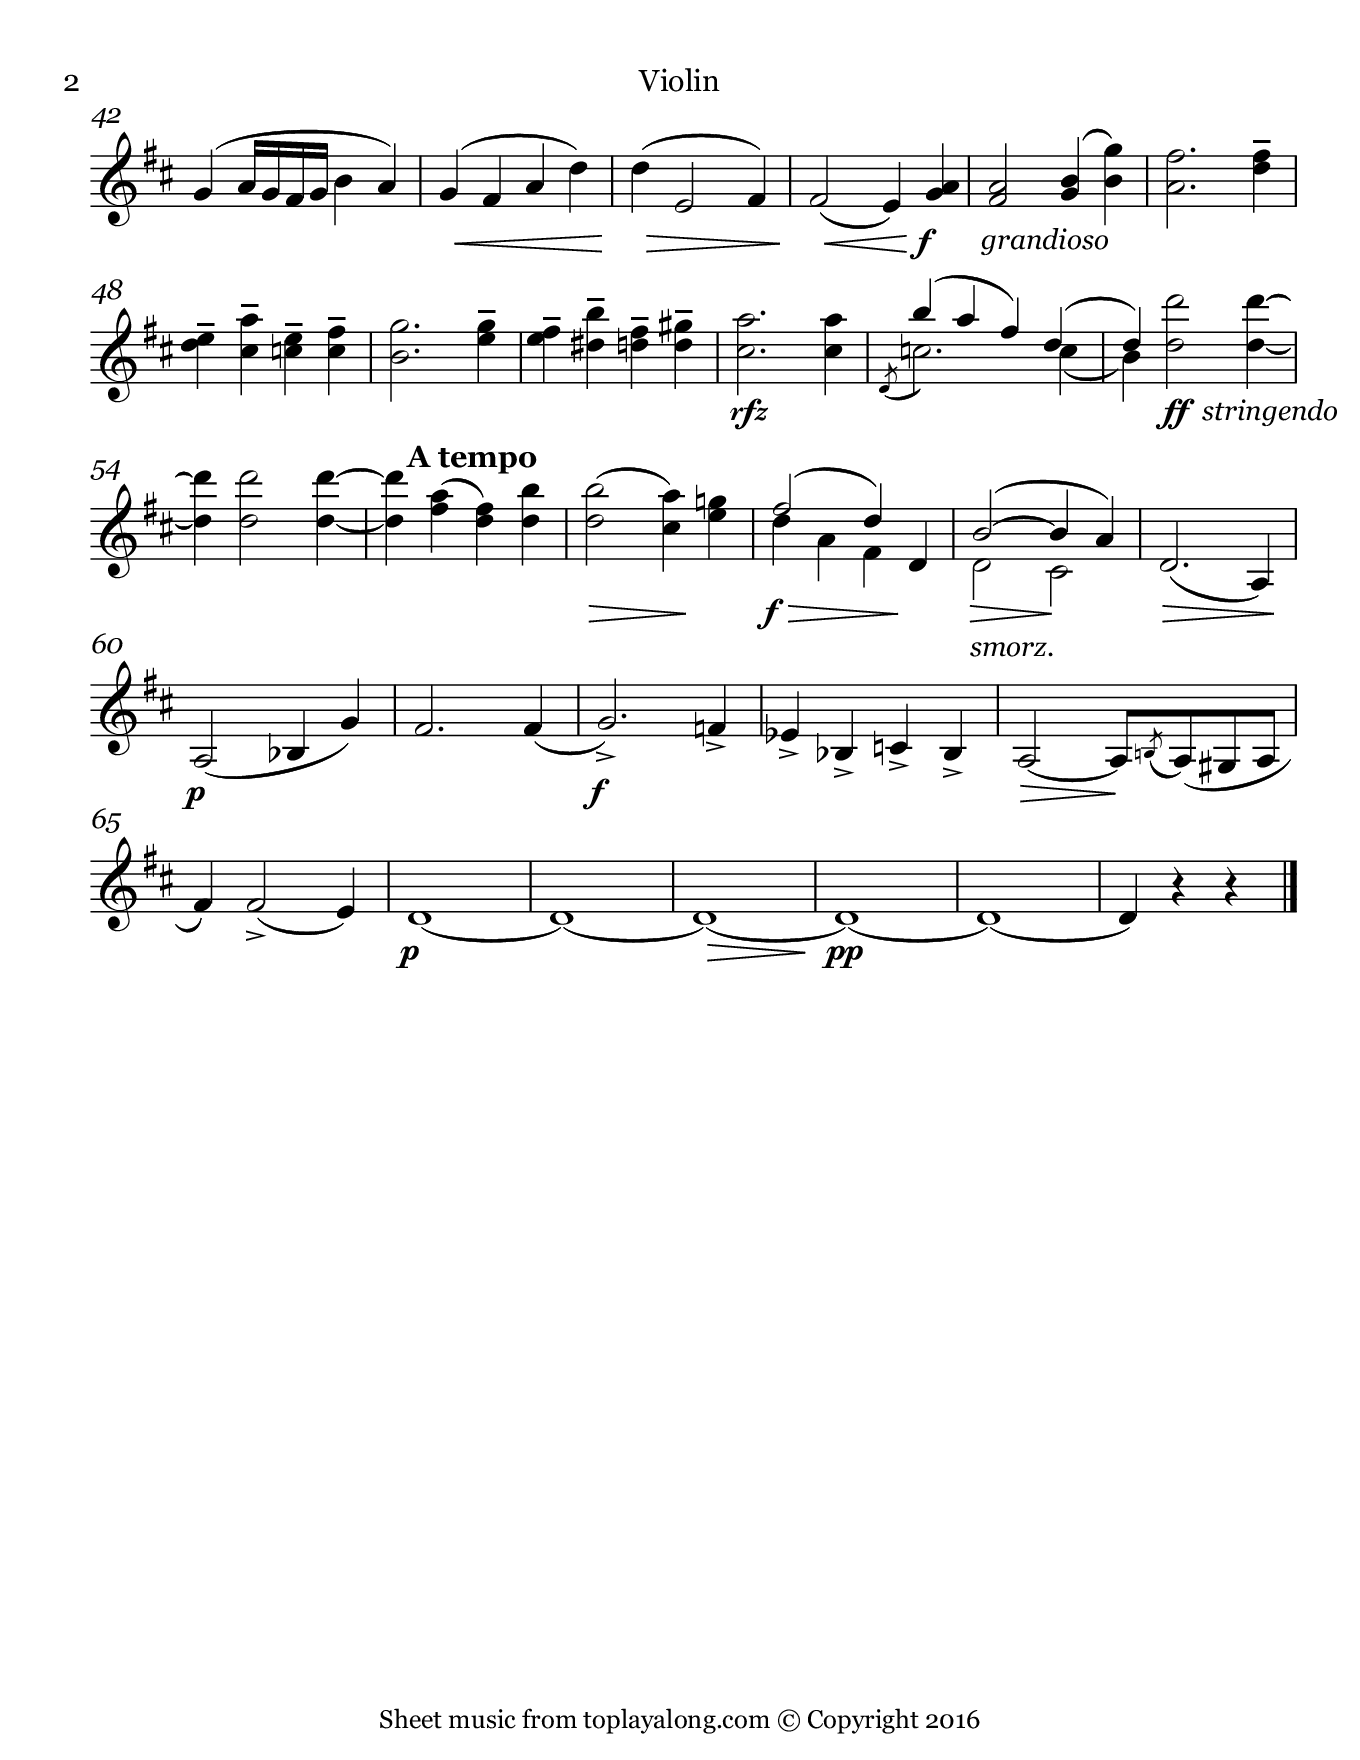 Cavatina by Raff. Sheet music for Violin, page 2.